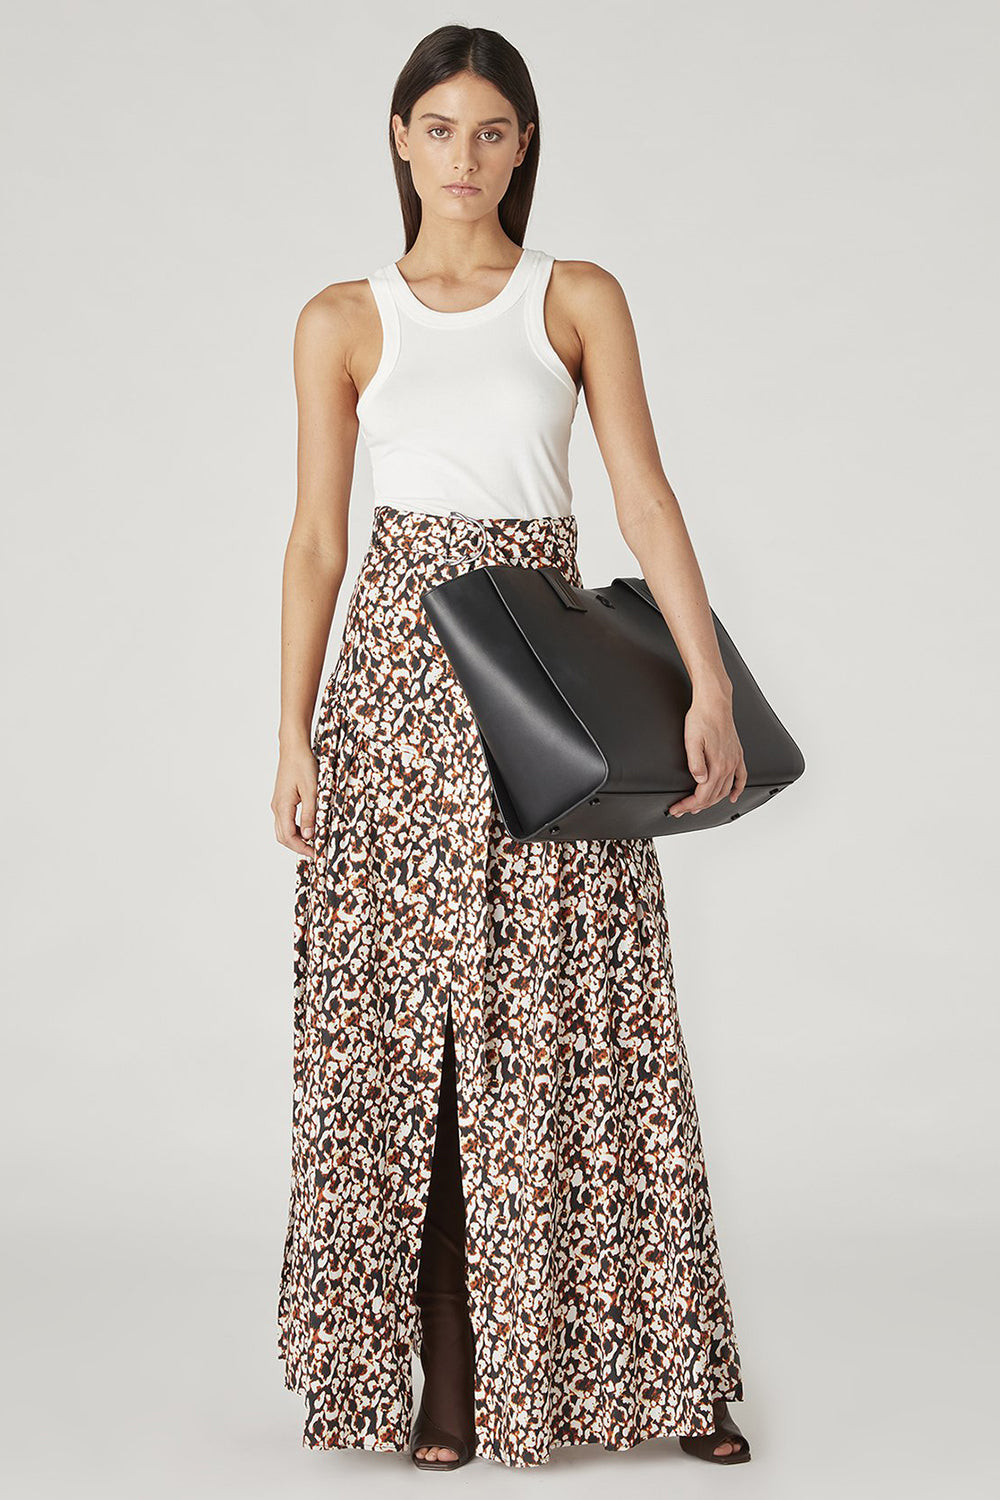 Camilla And Marc / Willow Midi Skirt / Print